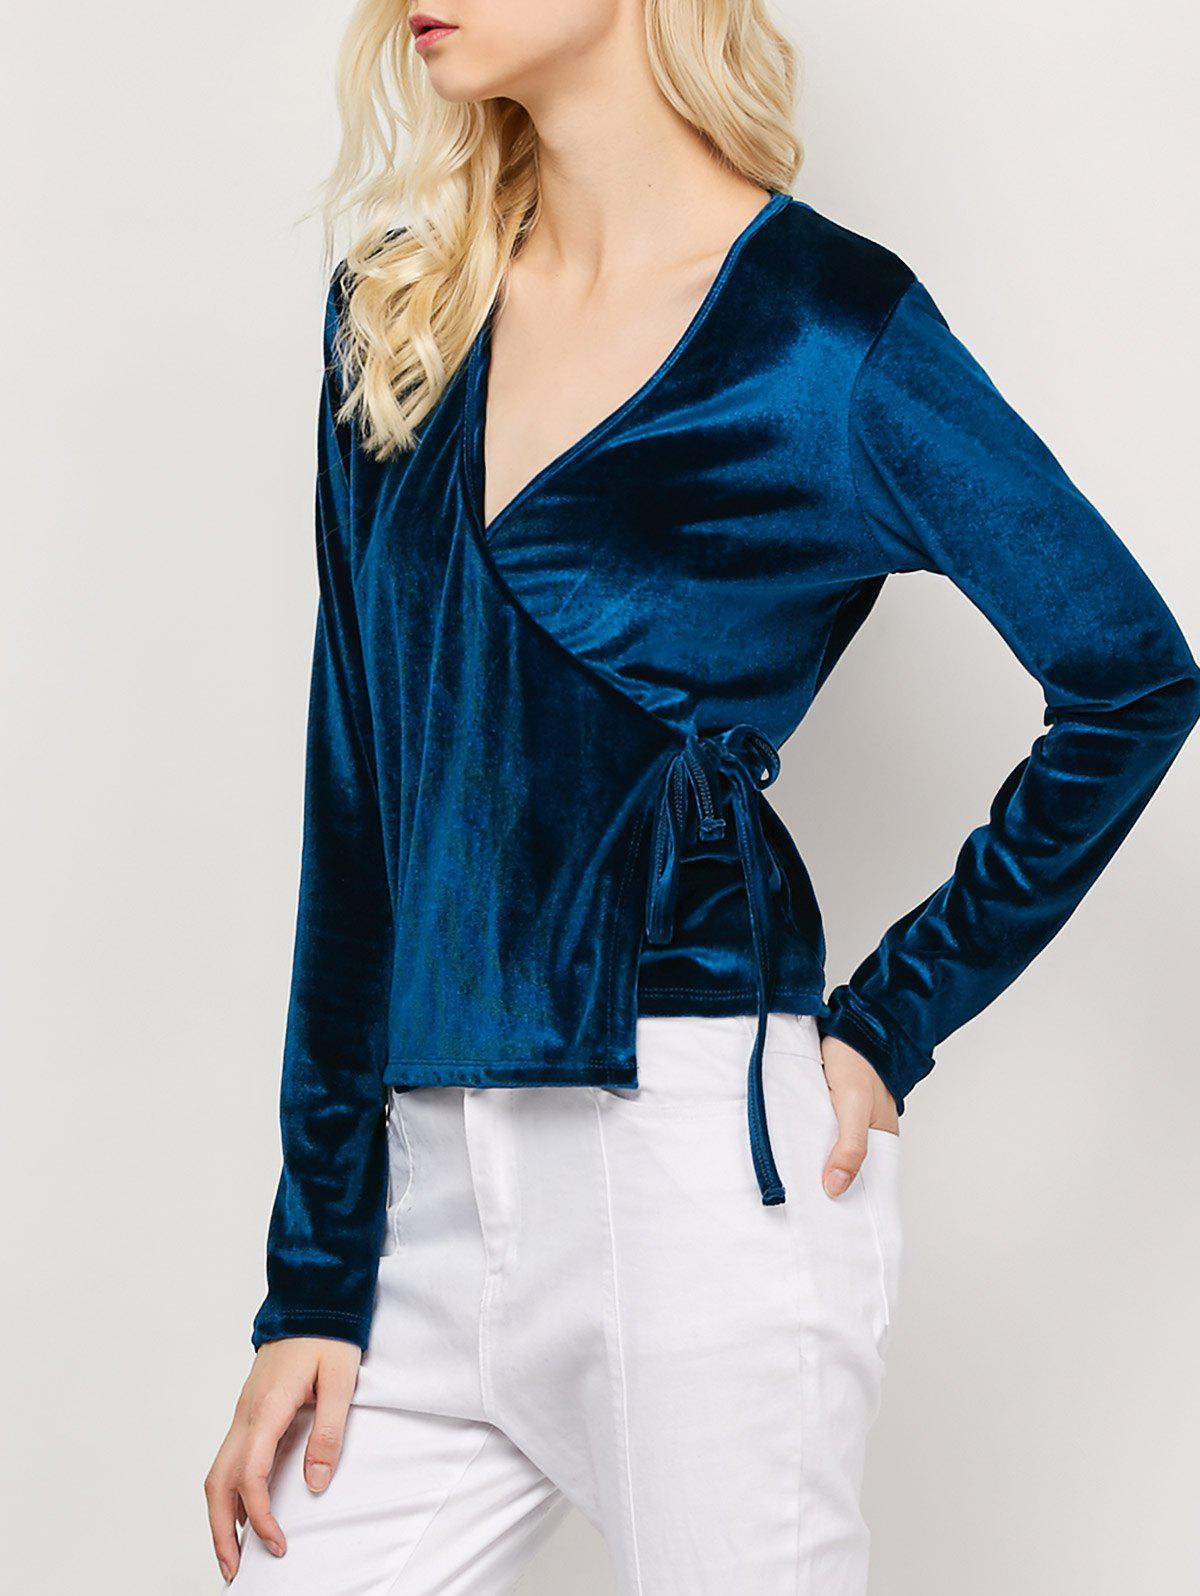 Long Sleeved Velvet Wrap Top - CADETBLUE L